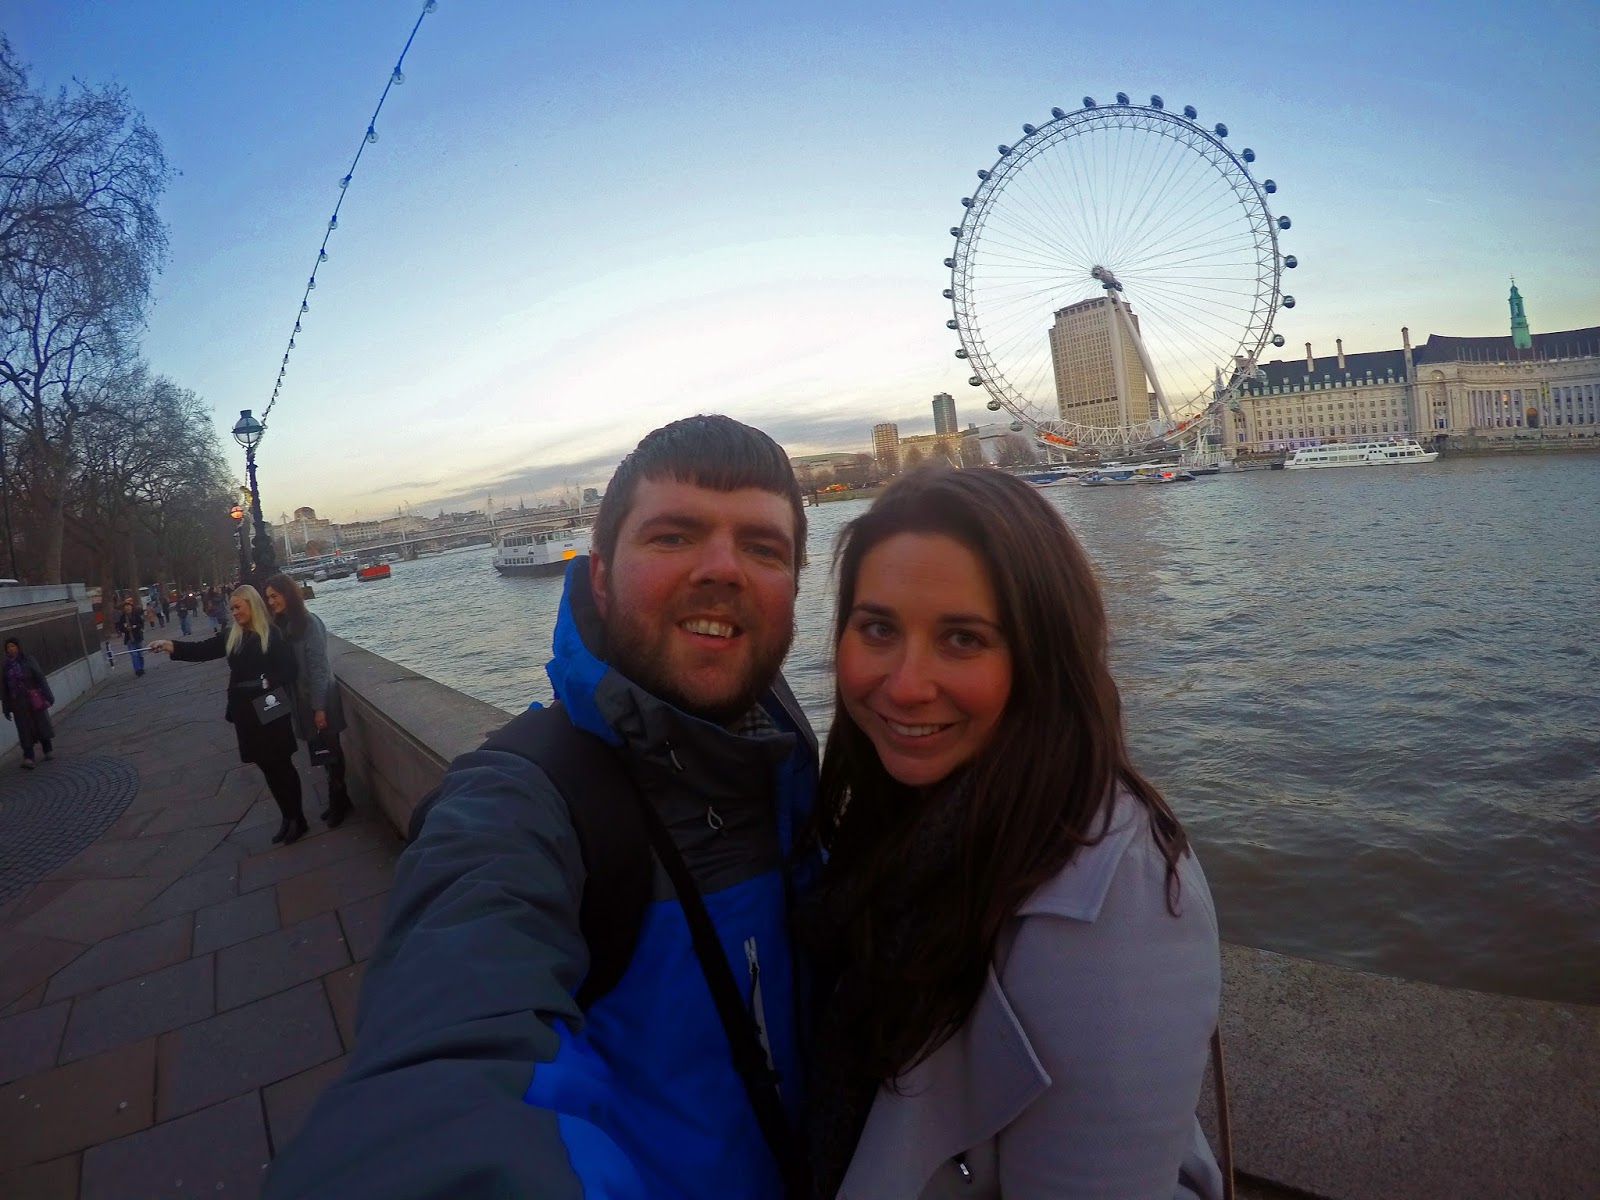 Couple in Westminster overlooking Thames and London Eye